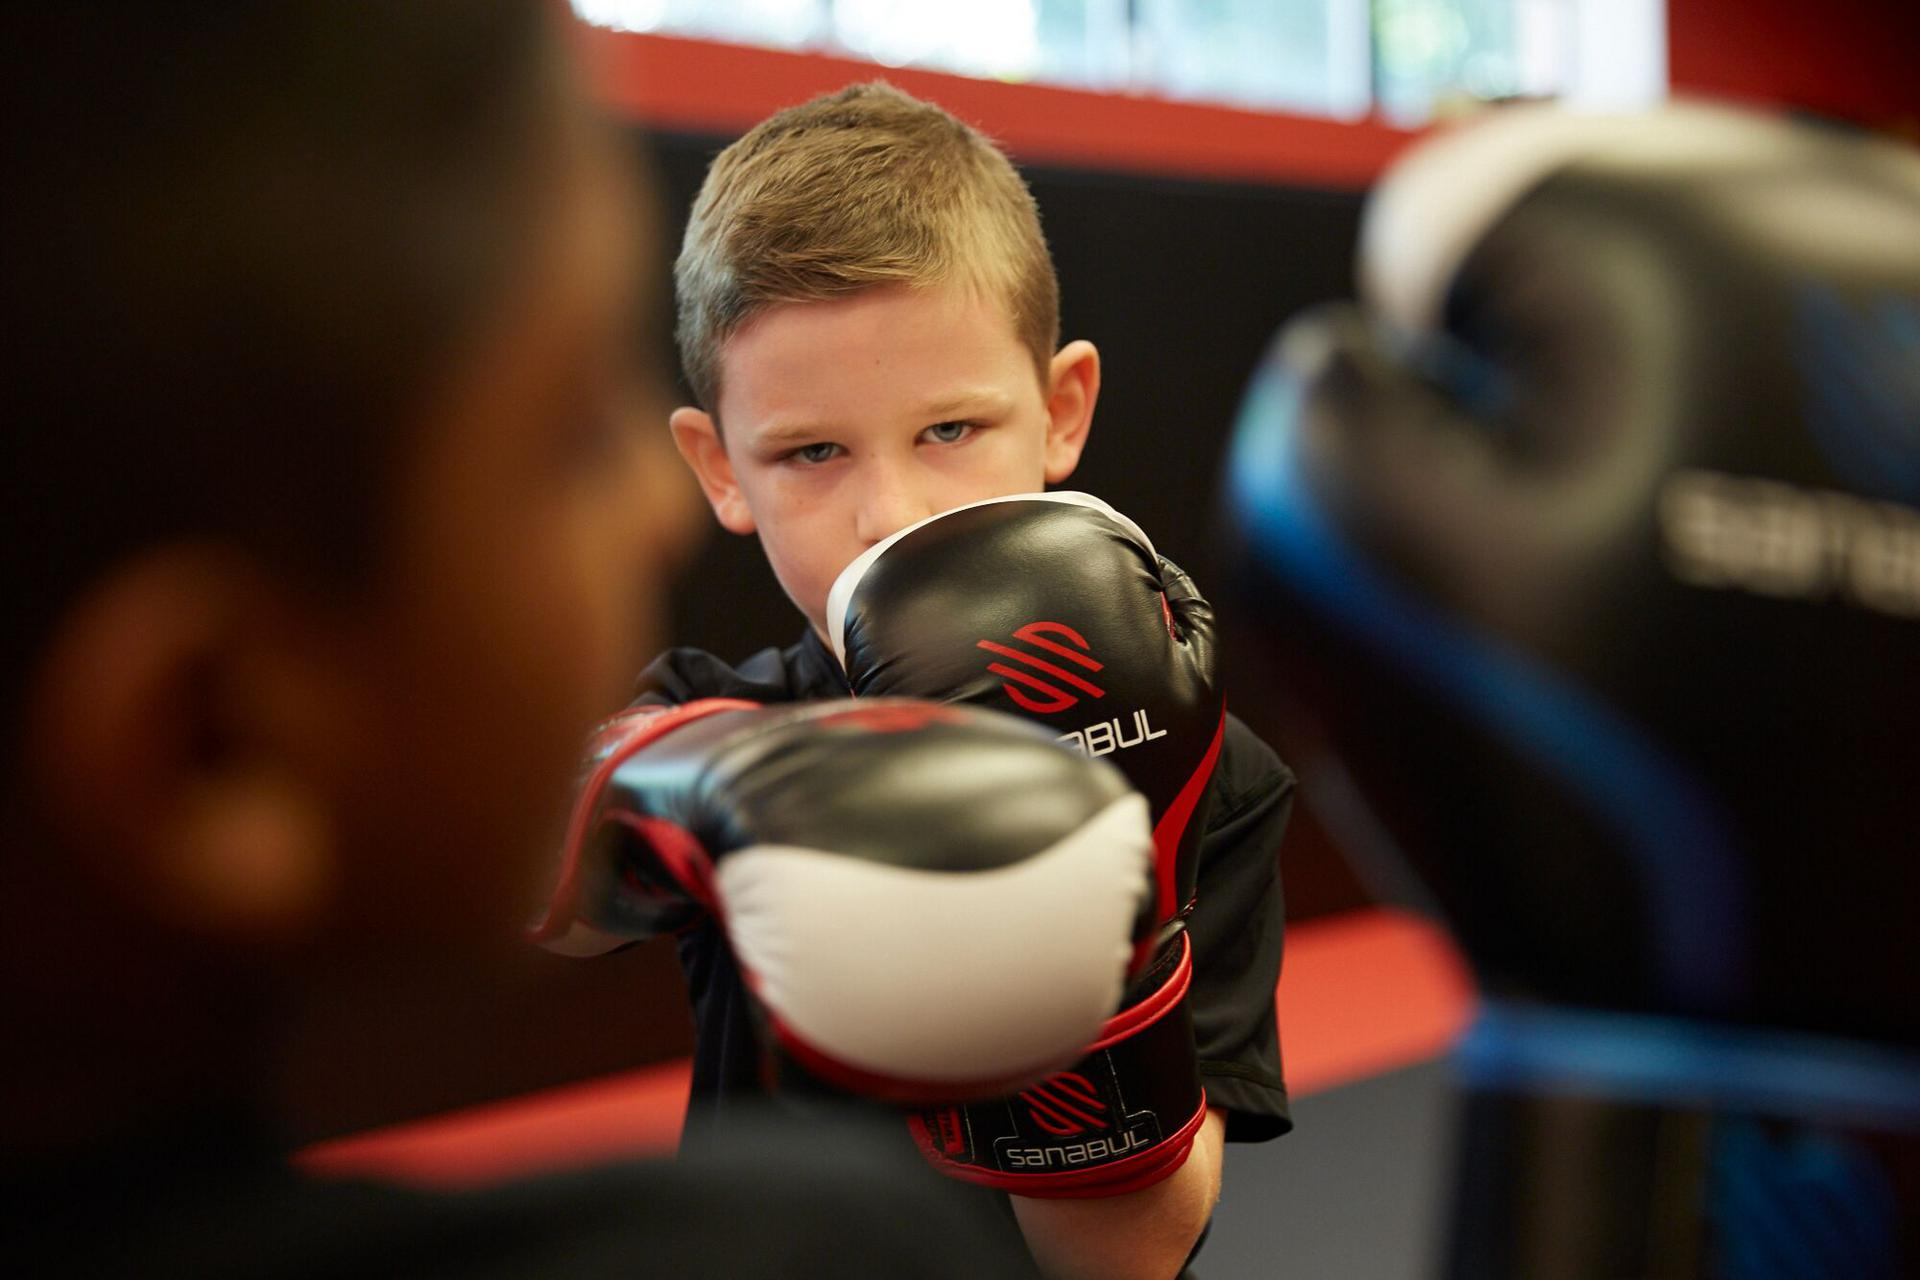 a child with gloves on throwing a punch in a martial art class